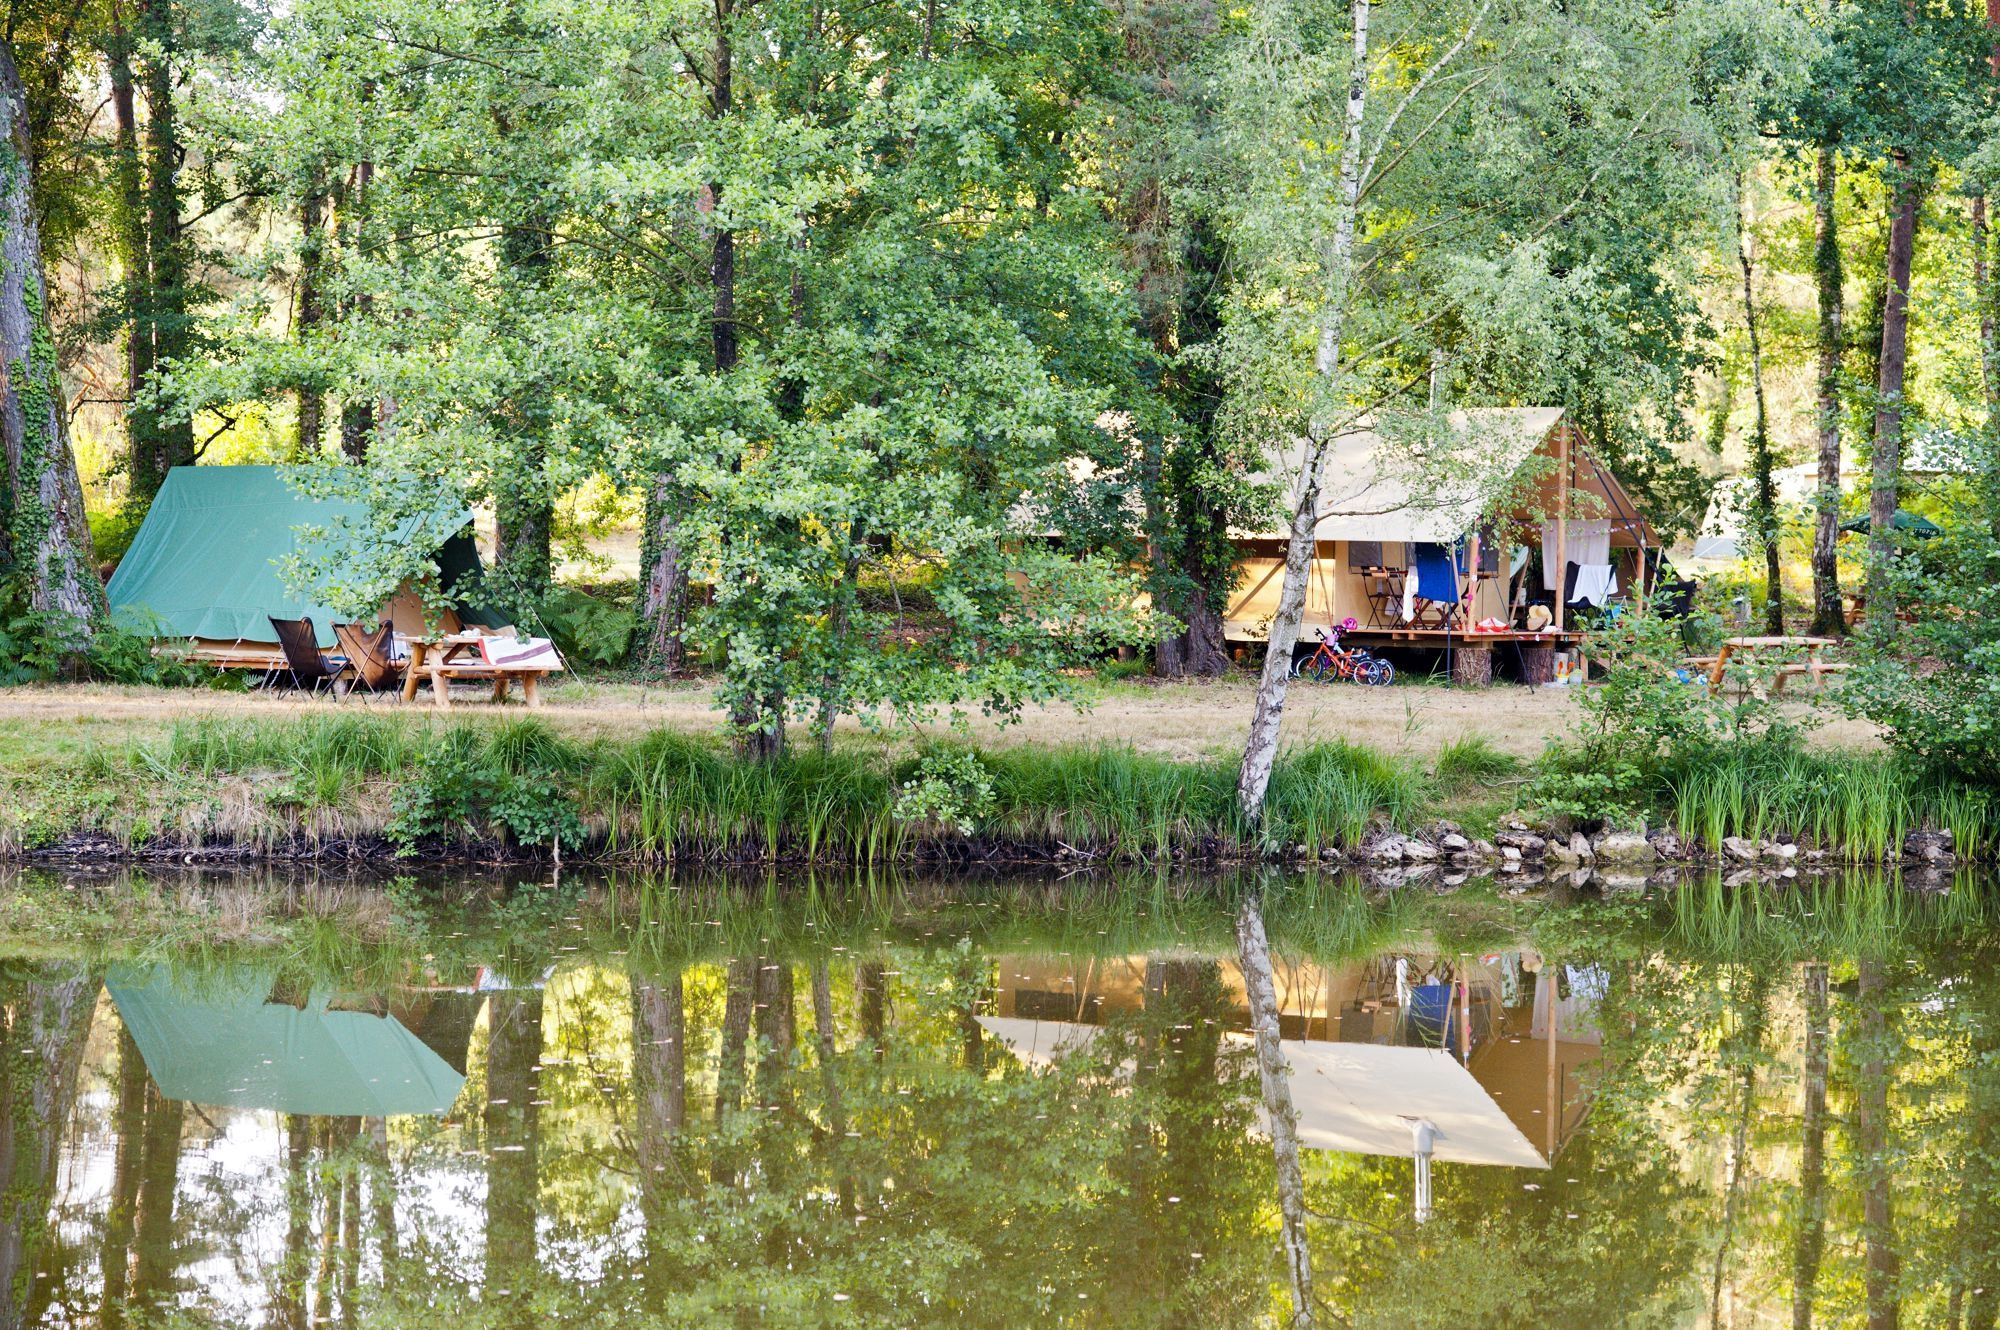 Campsites in the Loire Valley – Best Campsites in Loire Valley Region